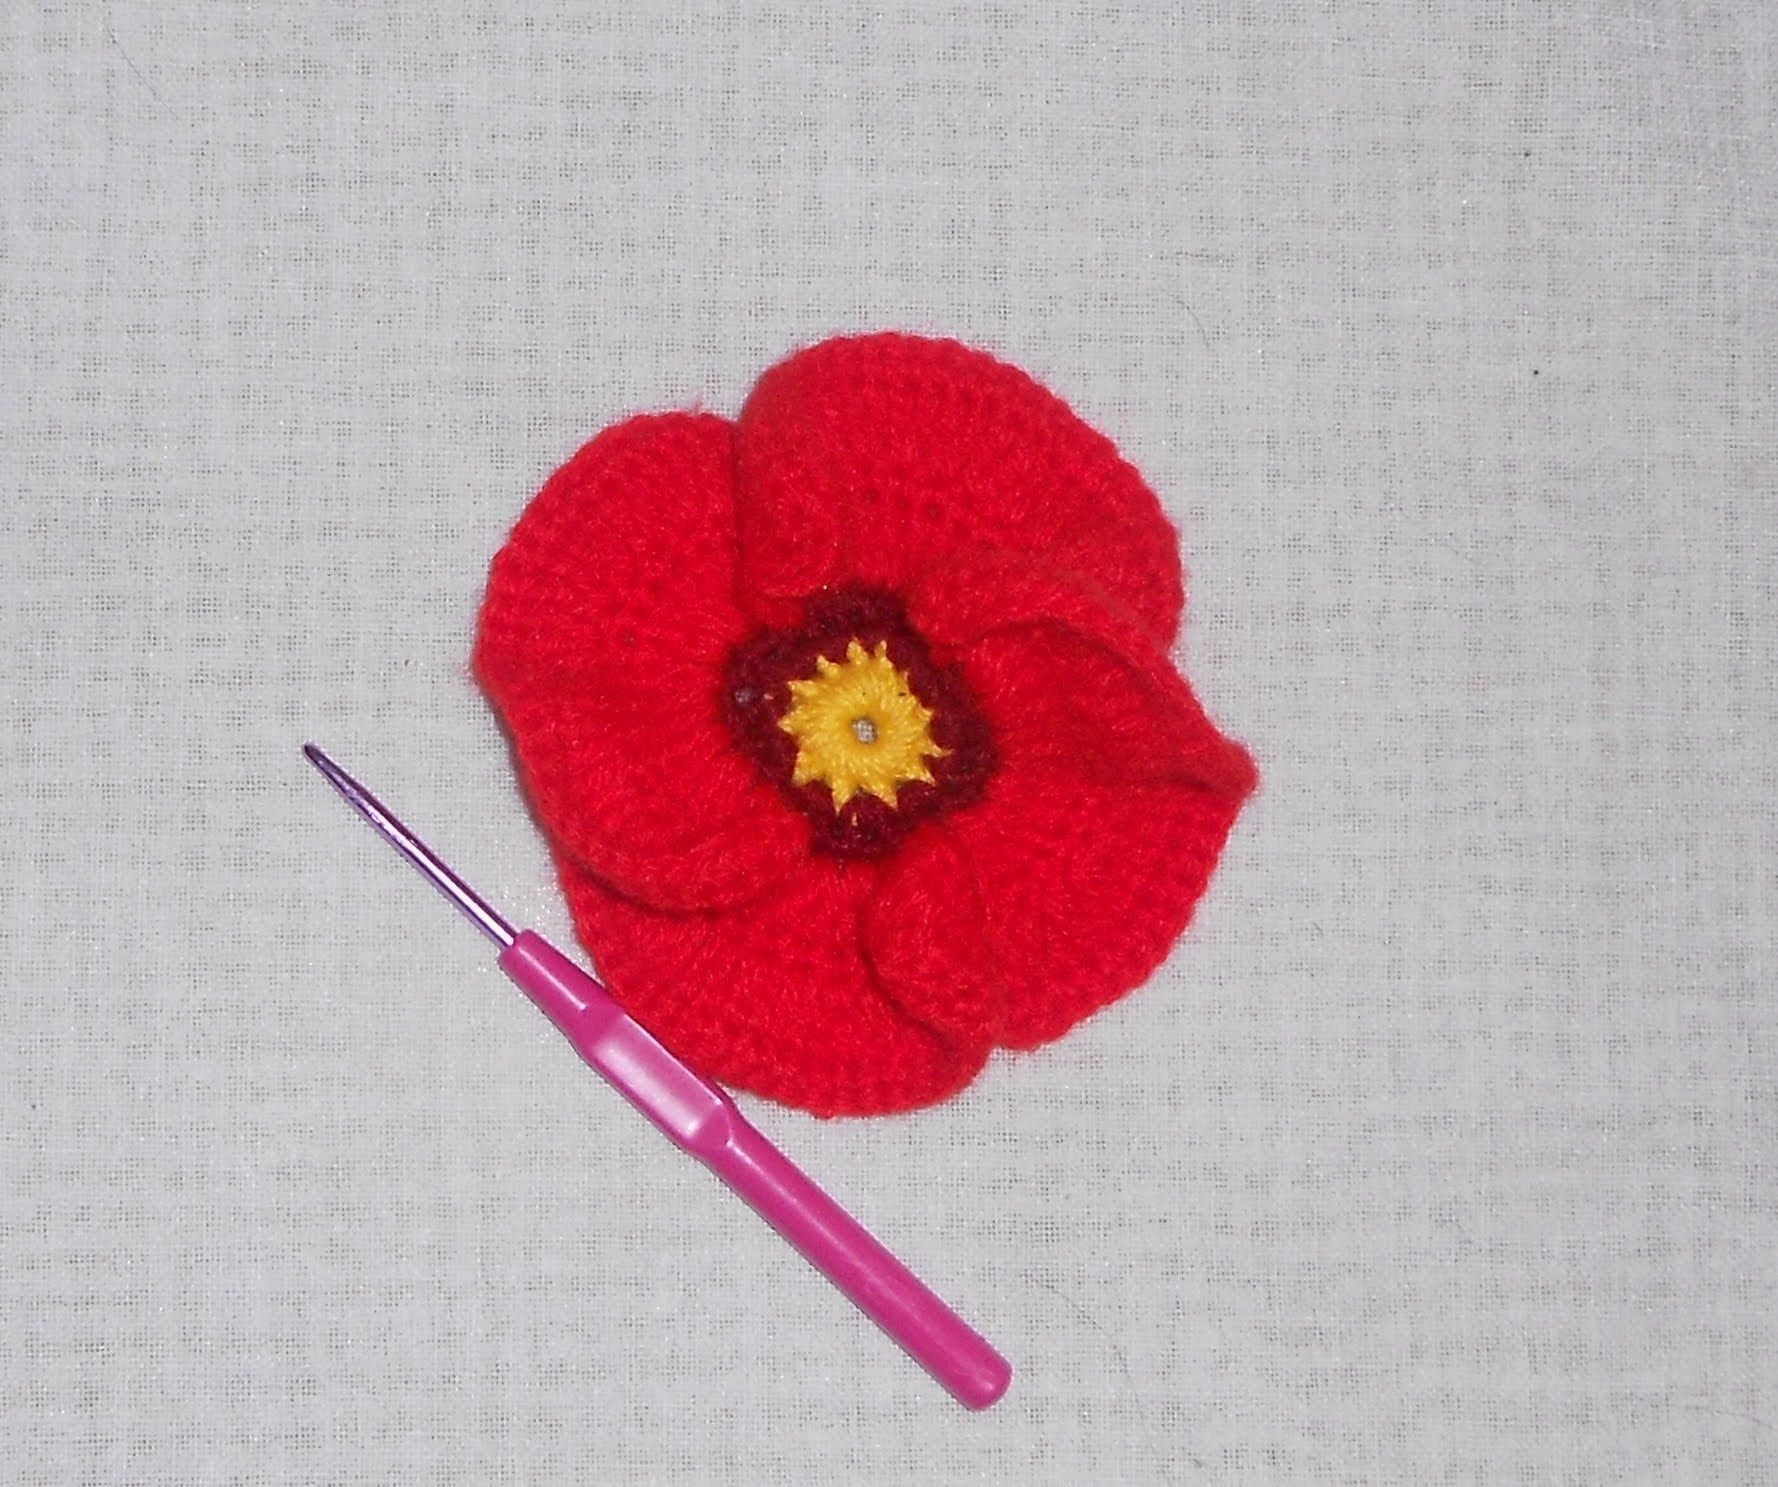 Uncinetto croche fiore papavero crochet pinterest crochet uncinetto crochet fiore papavero crochet poppy flower ganchillo show your crafts and diy projects bankloansurffo Image collections